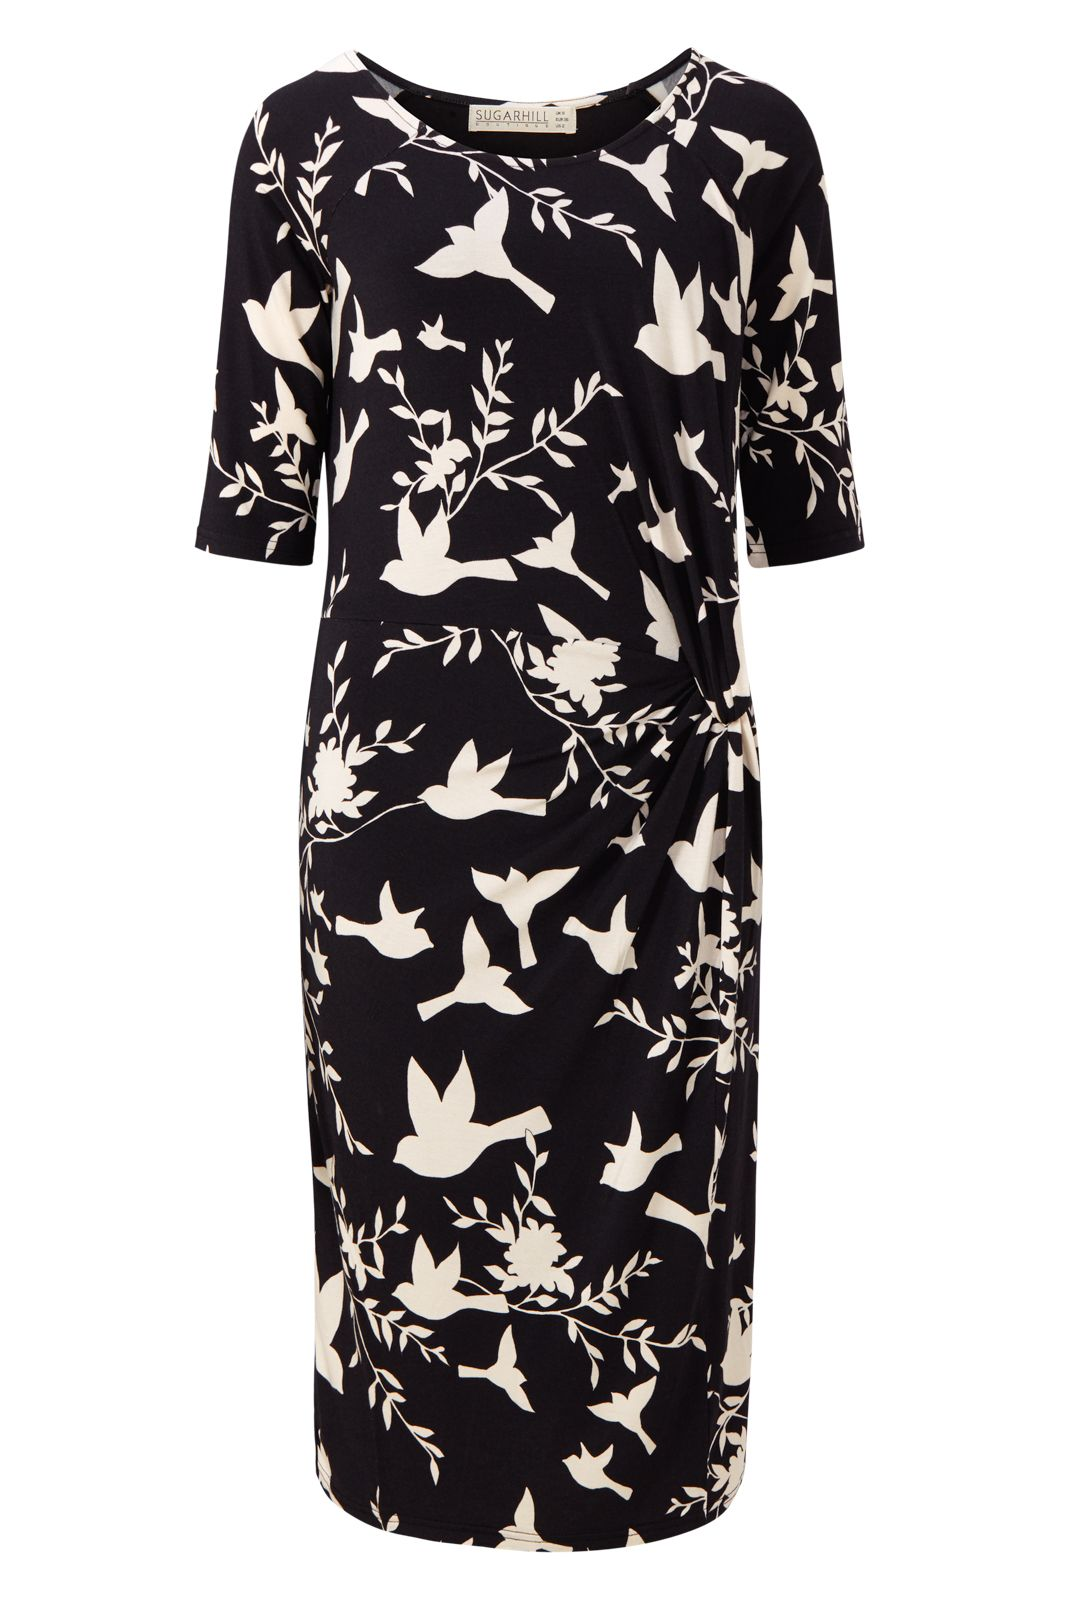 Sugarhill Boutique JENNA BIRD TWIST JERSEY DRESS, Blue